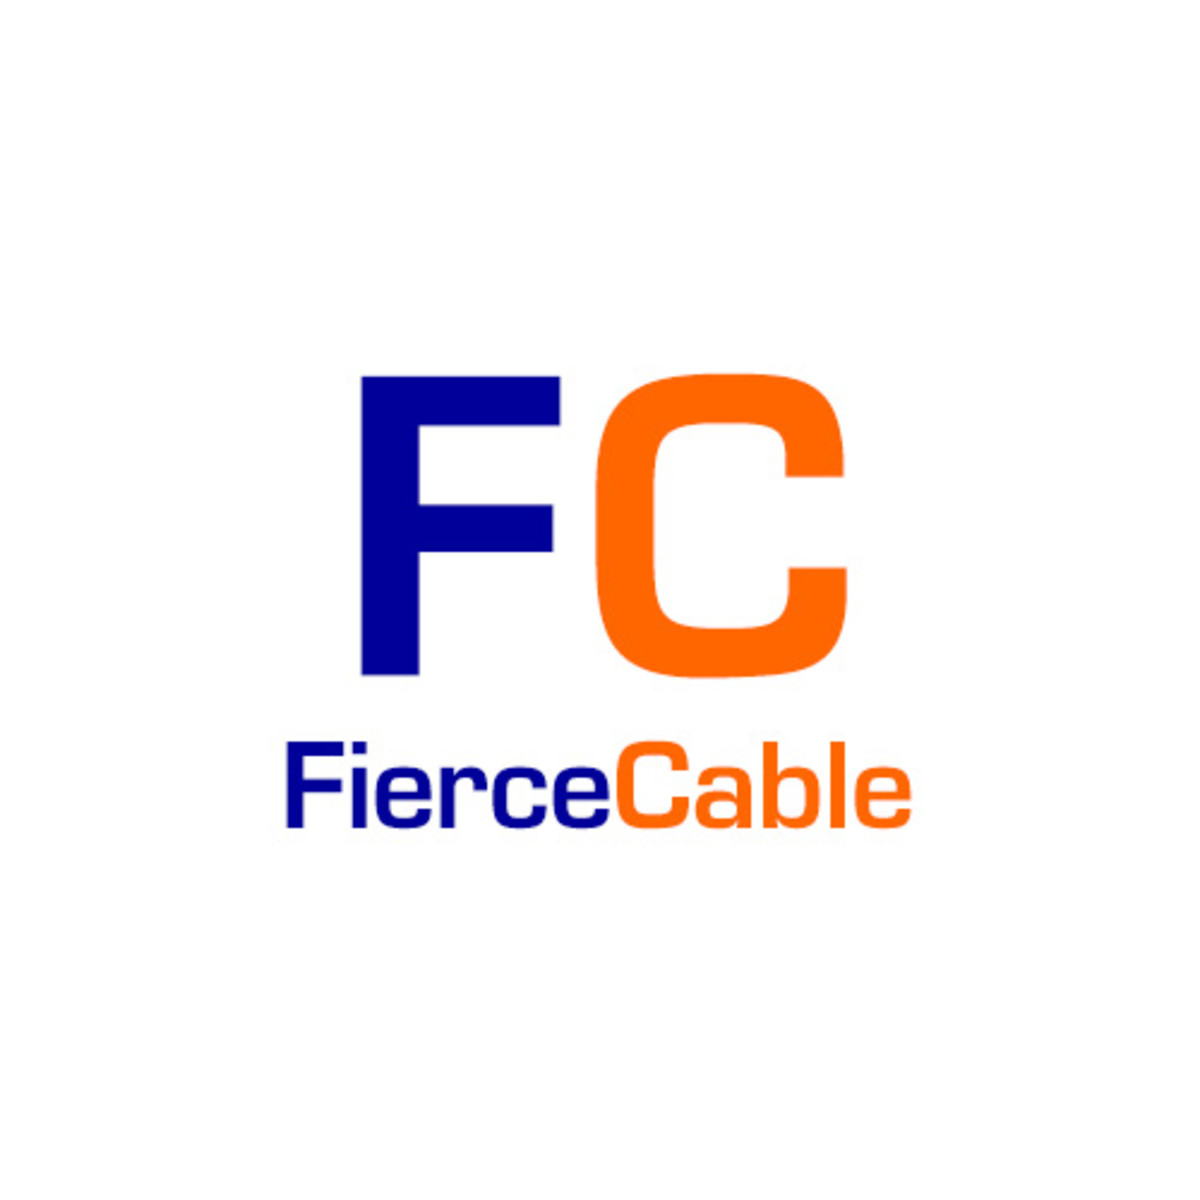 FierceCable is a trusted source of industry news for people who work in the cable and broadcasting industry.